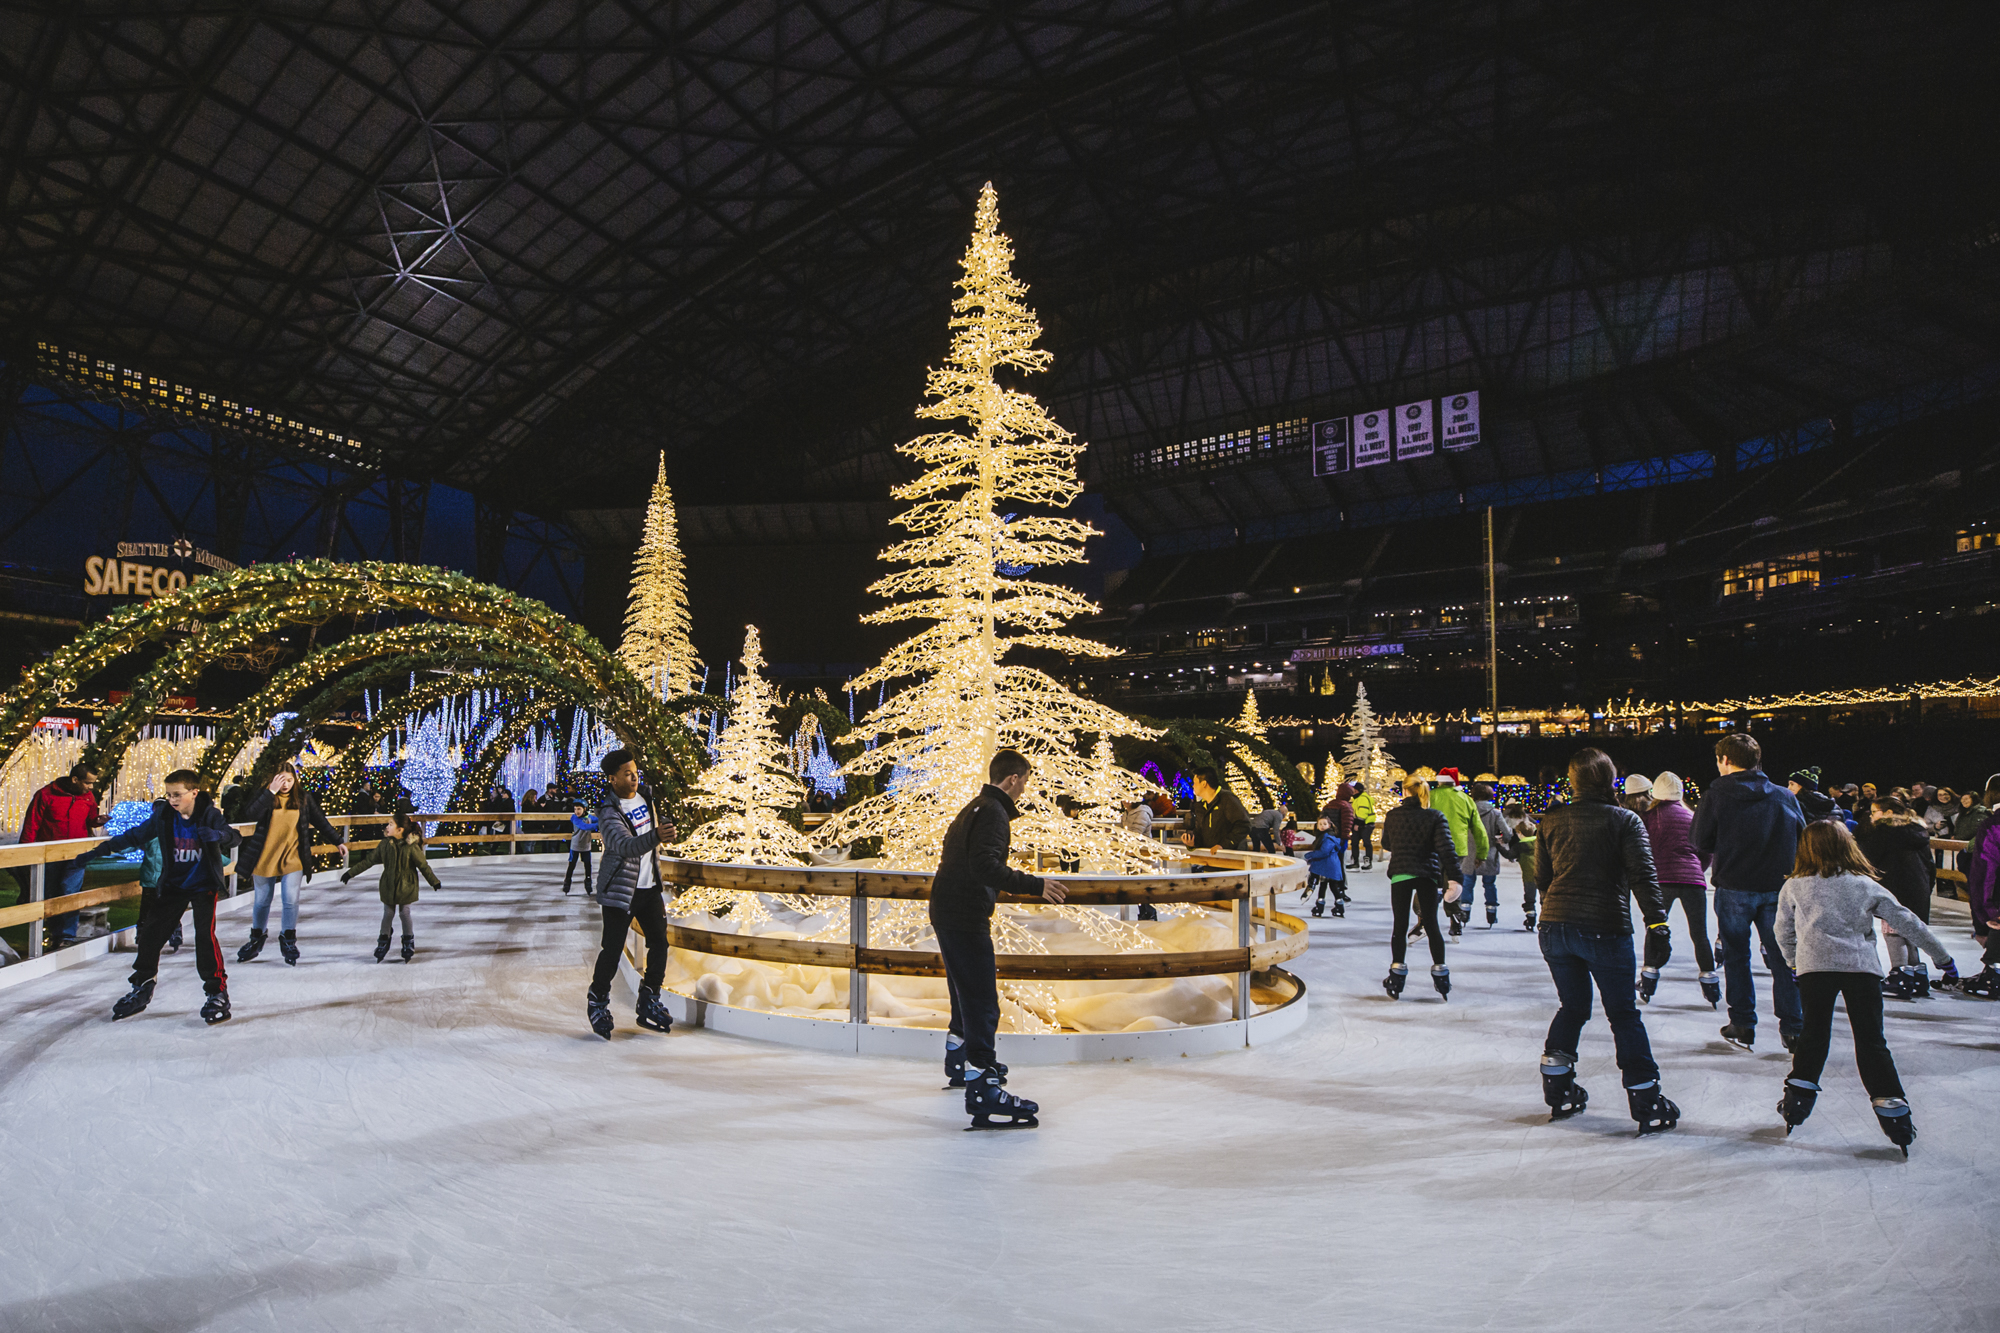 The Enchant Christmas experience has landed at Safeco Field! The winter wonderland is taking over, complete{ }with a 8,500 square foot ice skating rink shaped in lazy river style, huge light mazes with larger than life sculptures and illuminated archways, live music, a Christmas marketplace and more. Enchant Christmas runs{ }November 23 - December 30, with tickets start at $19.99. More online{ }enchantchristmas.com. (Image: Sunita Martini / Seattle Refined)